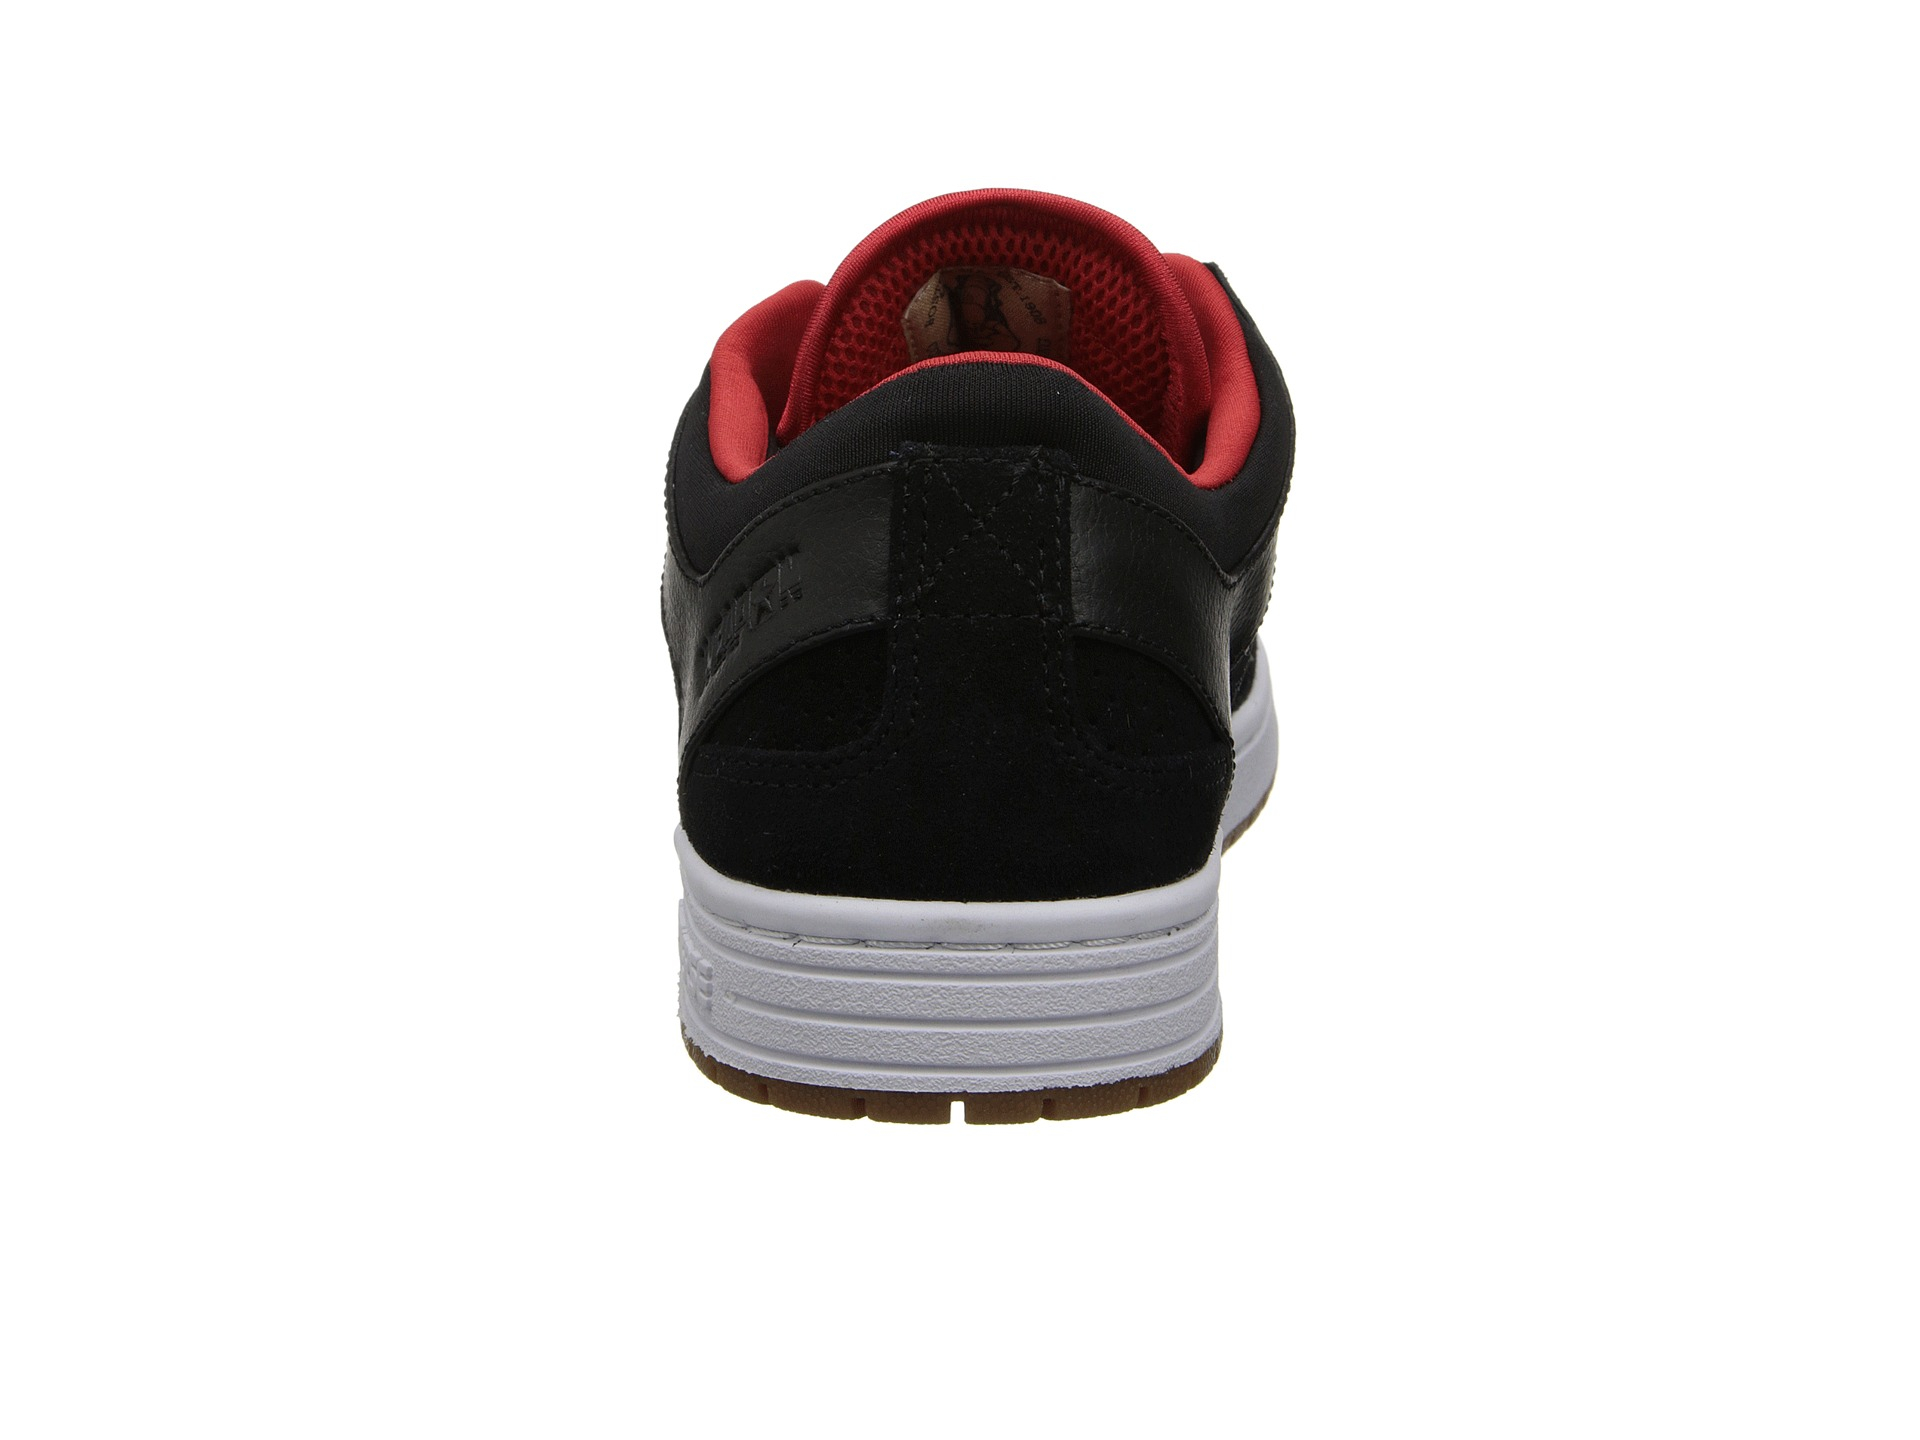 44f8a3551c06 Lyst - Converse Weapon 86 Skate in Red for Men